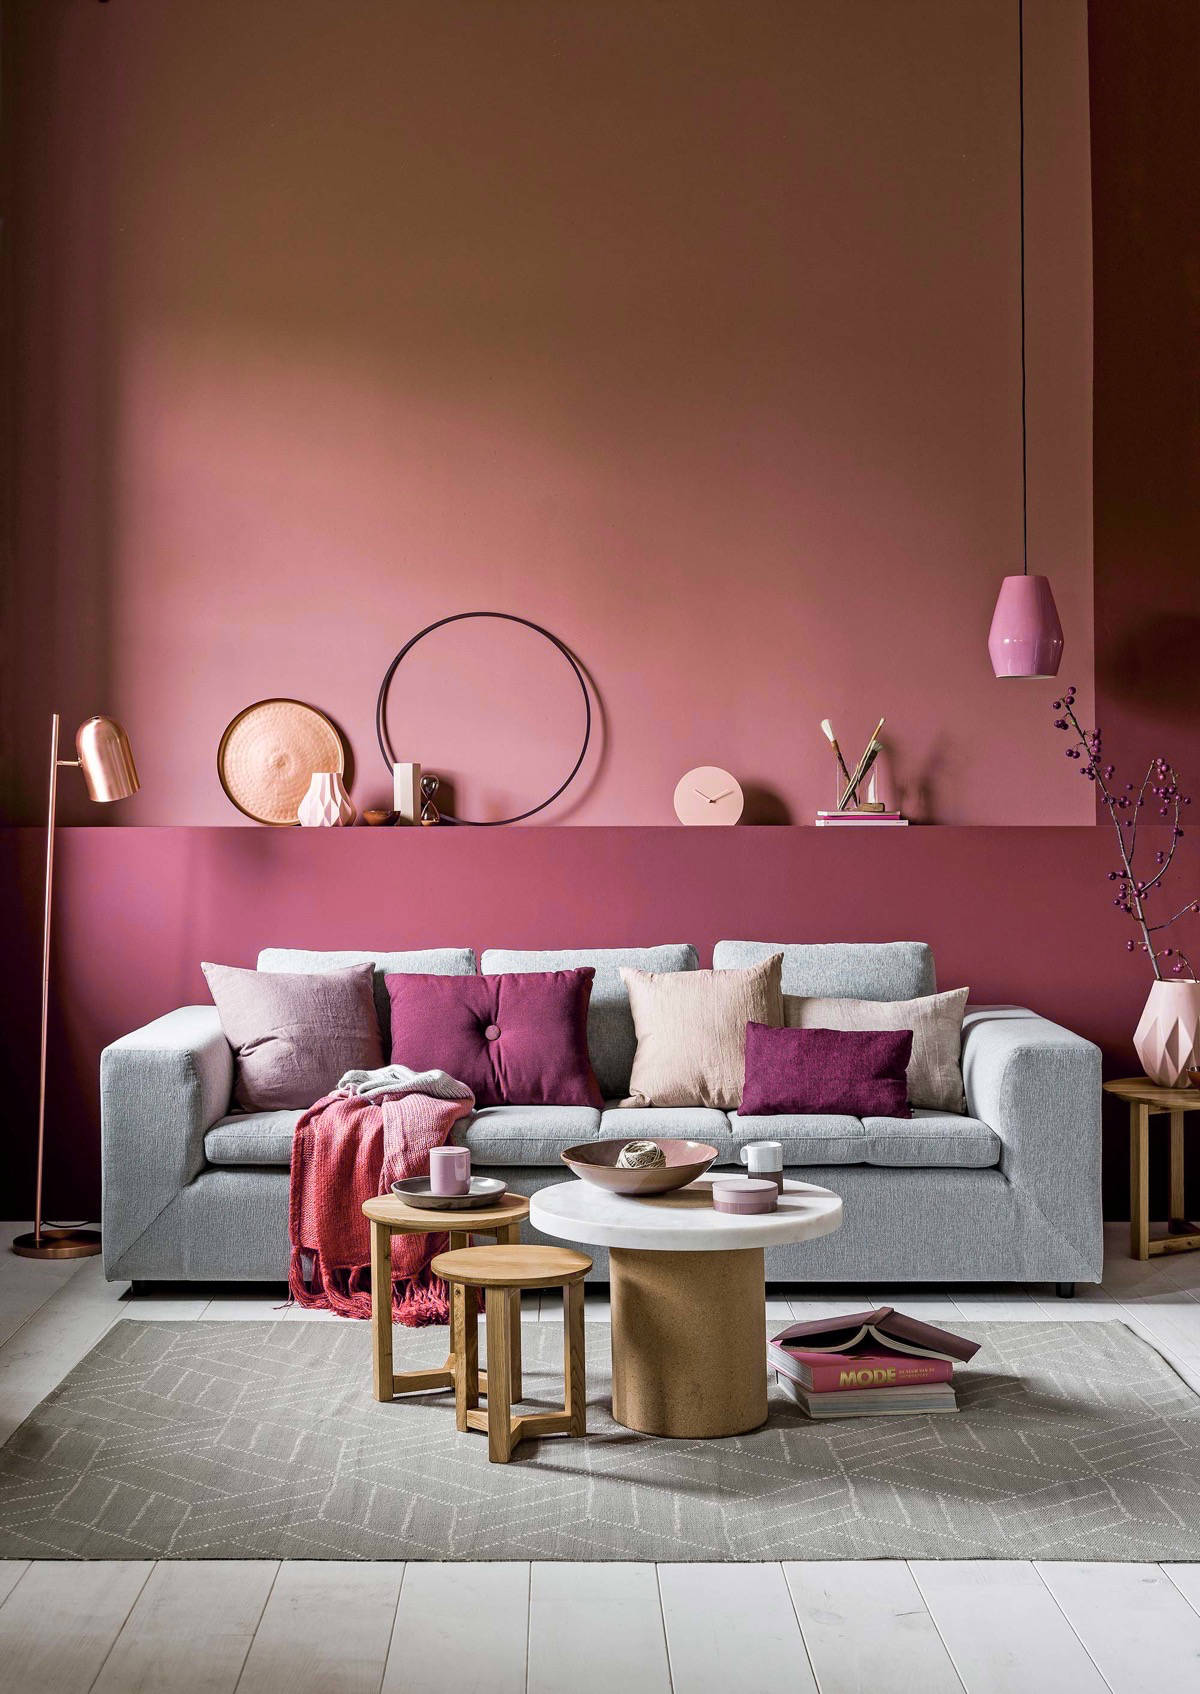 Design You Room: 51 Pink Living Rooms With Tips, Ideas And Accessories To